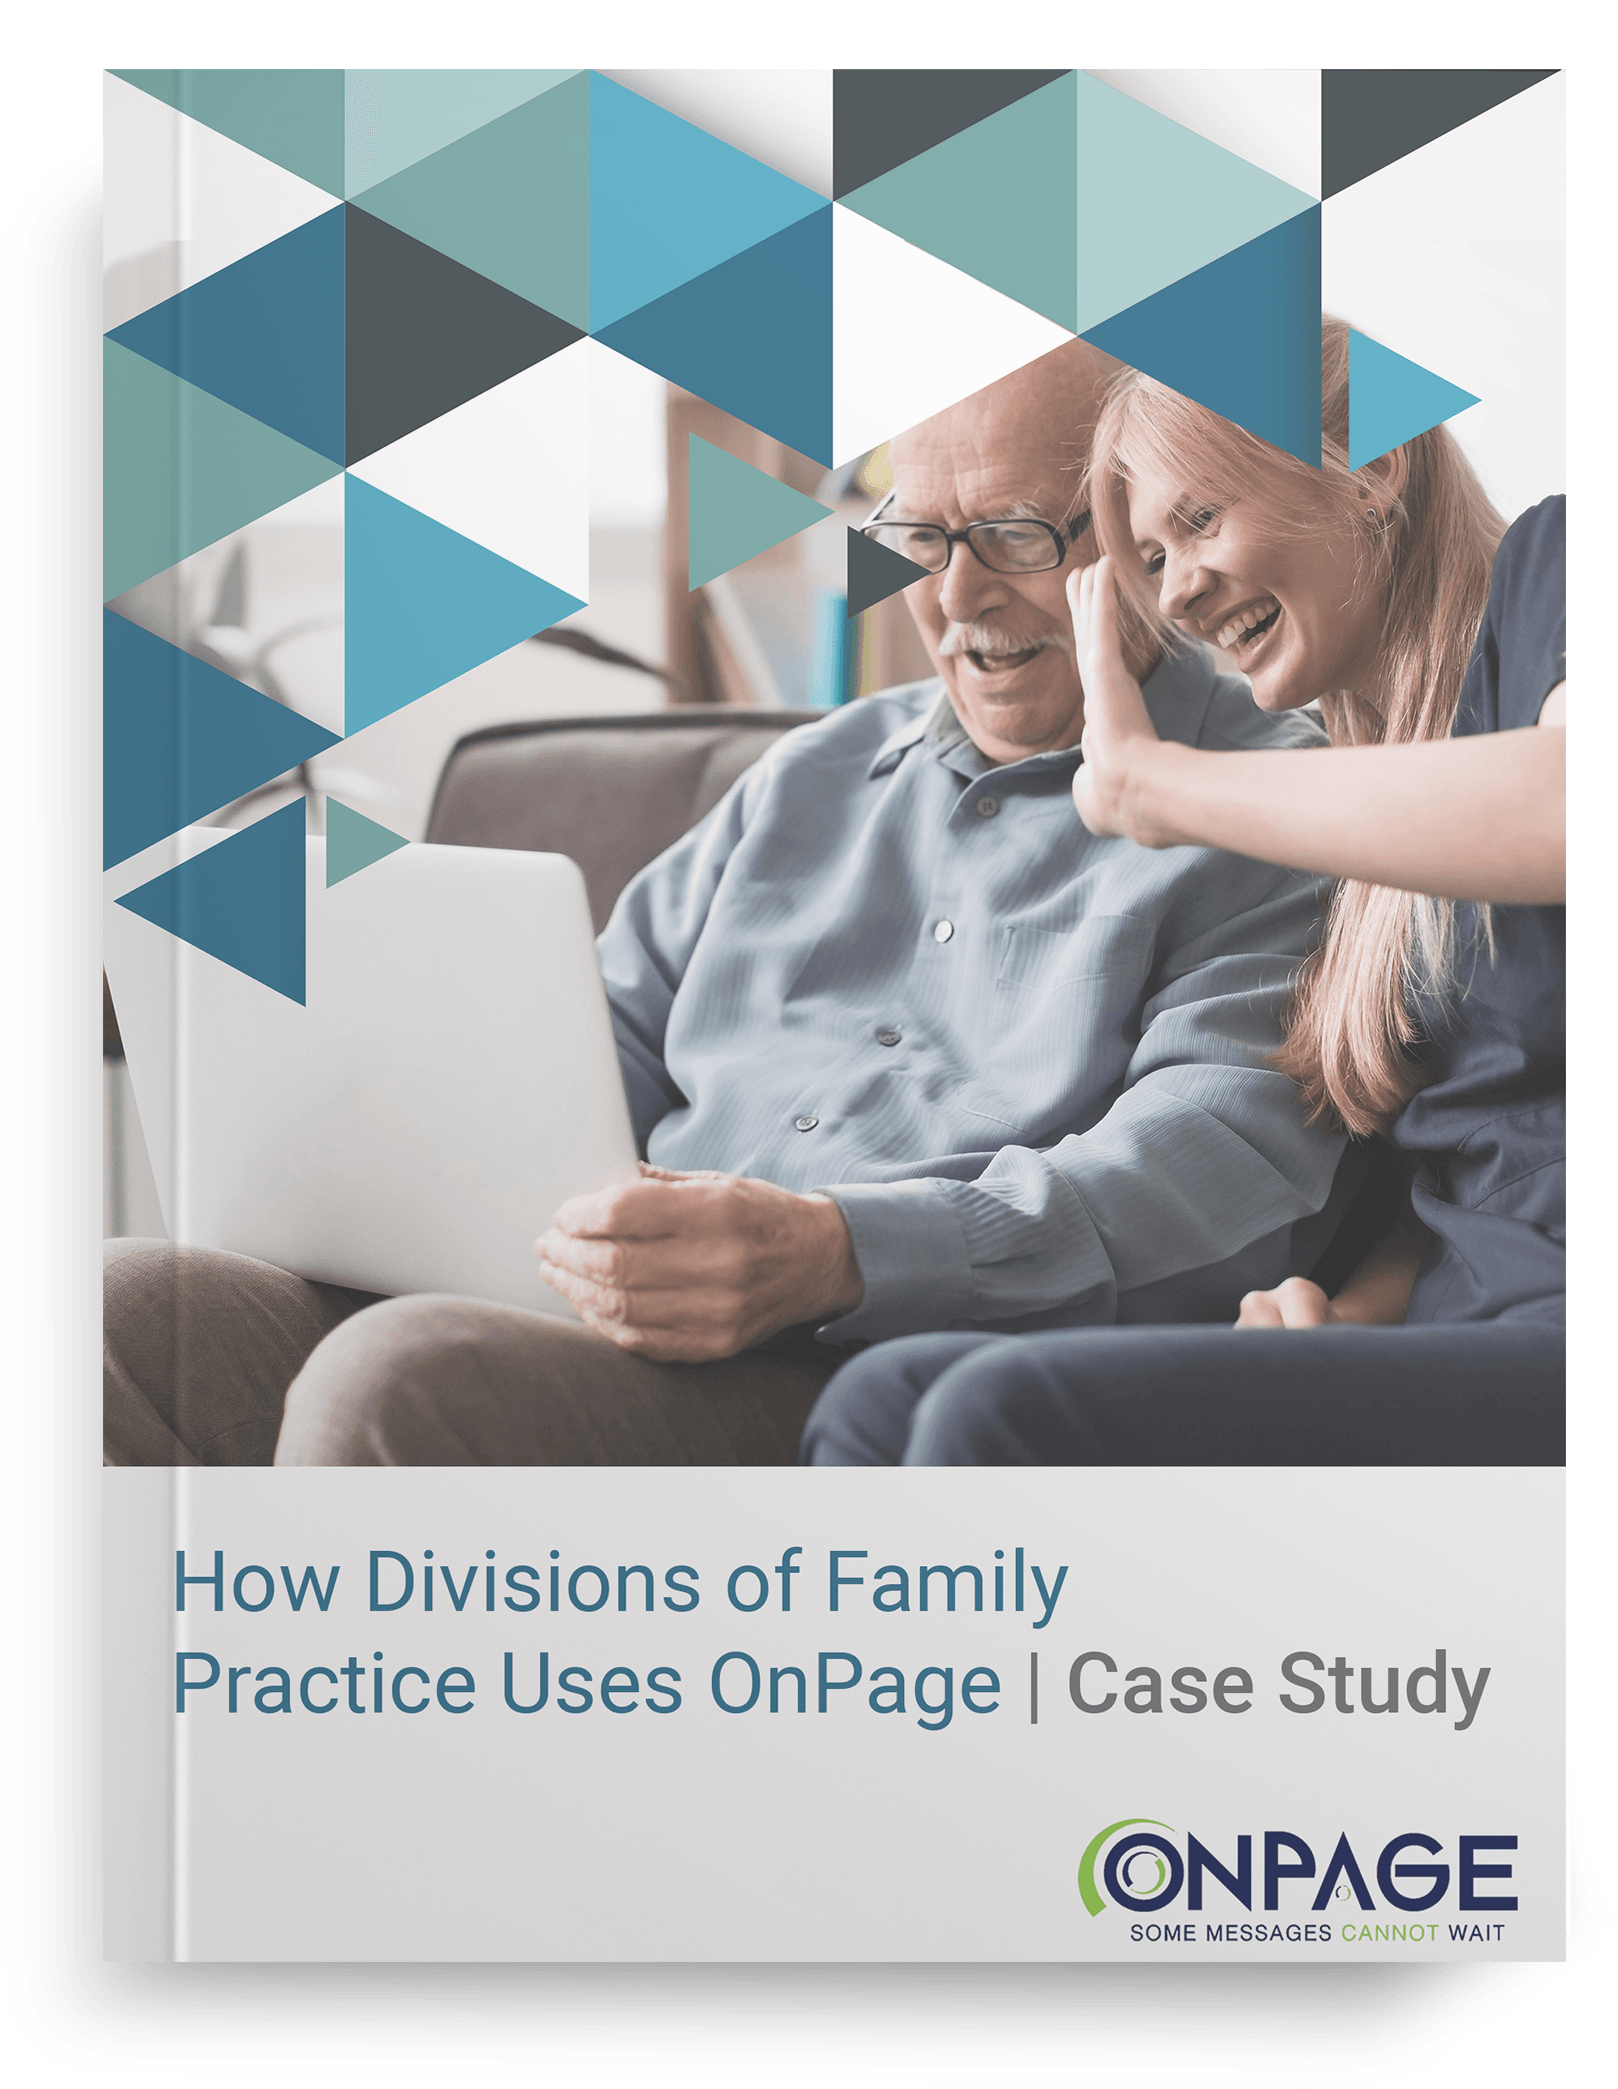 Divisions of Family Practice